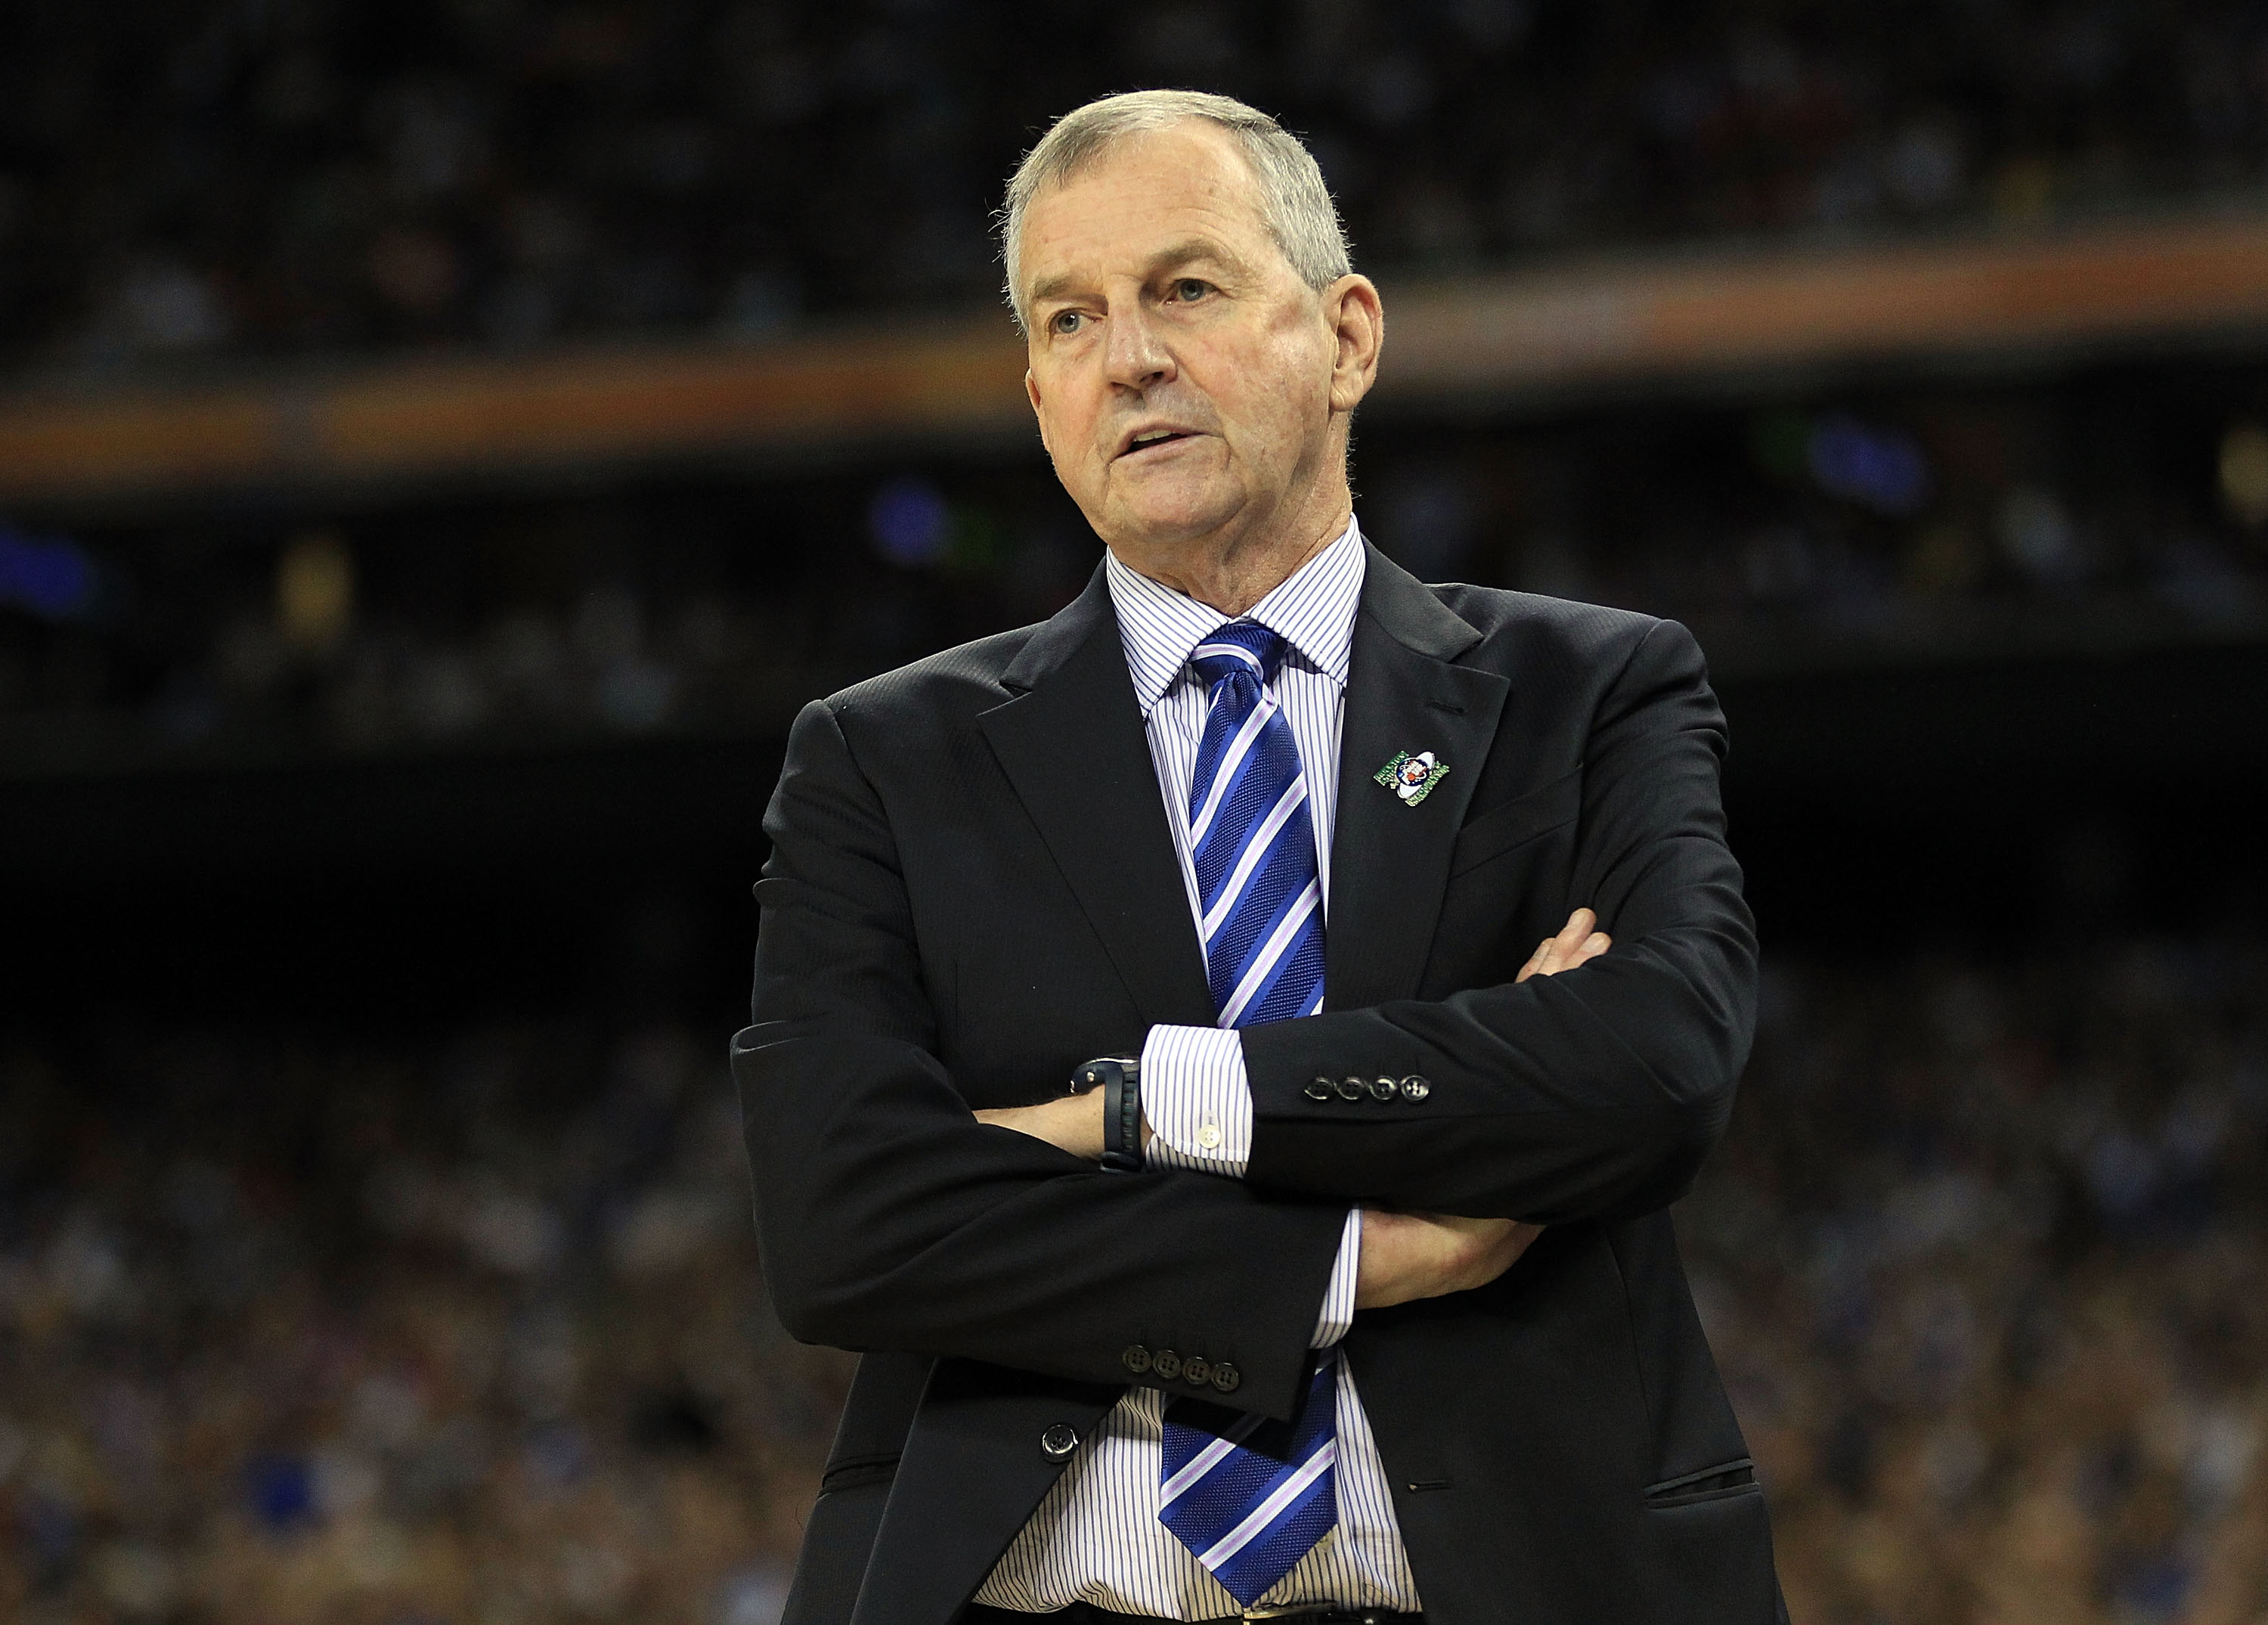 HOUSTON, TX - APRIL 04:  Head coach Jim Calhoun of the Connecticut Huskies looks on from the sidelines against the Butler Bulldogs during the National Championship Game of the 2011 NCAA Division I Men's Basketball Tournament at Reliant Stadium on April 4,